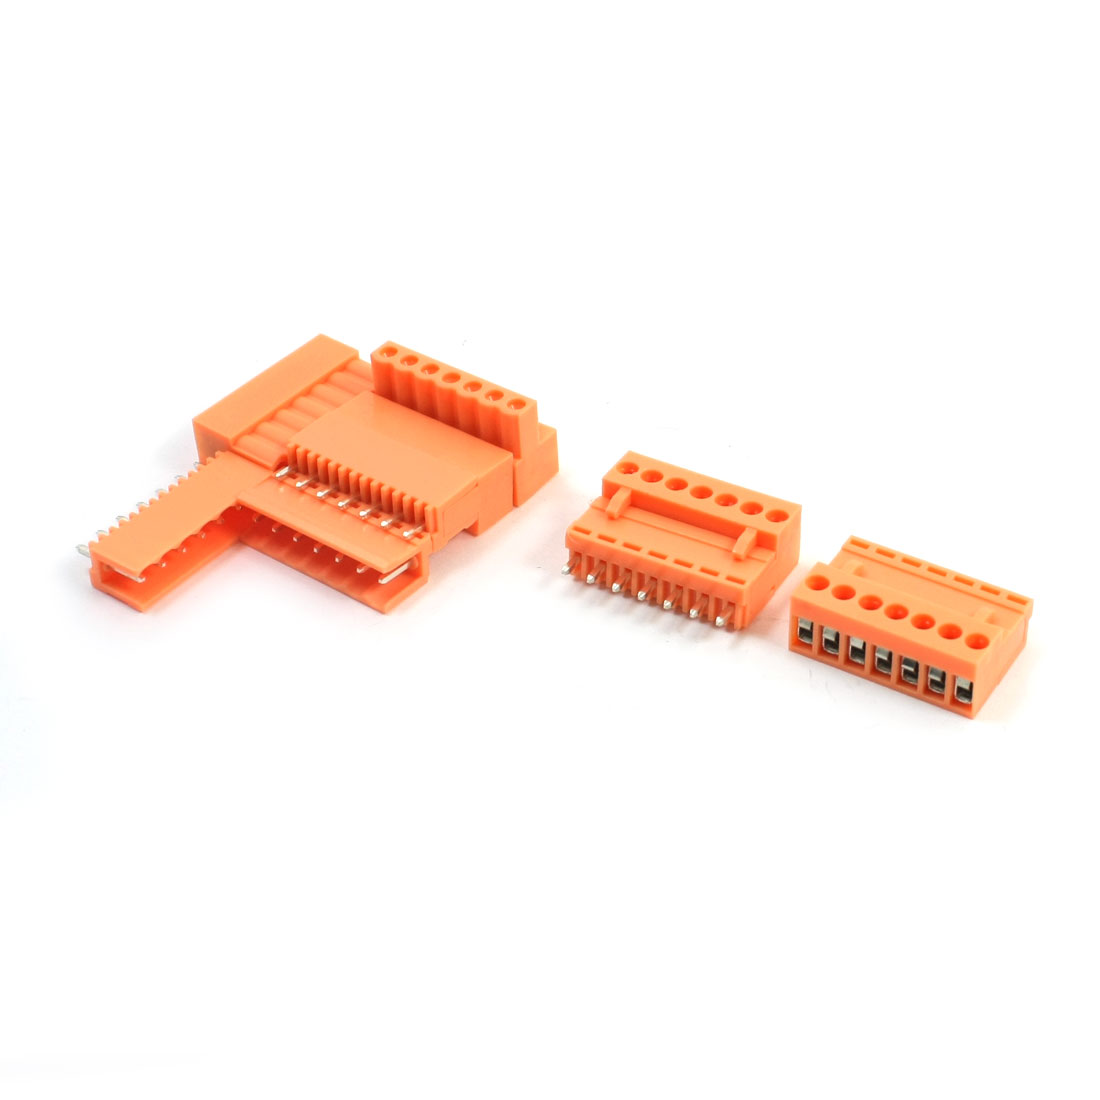 5Pcs 7-Pin Pluggable Type PCB Mounting Orange Plastic Screw Terminal Barrier Block Connector AC300V 10A